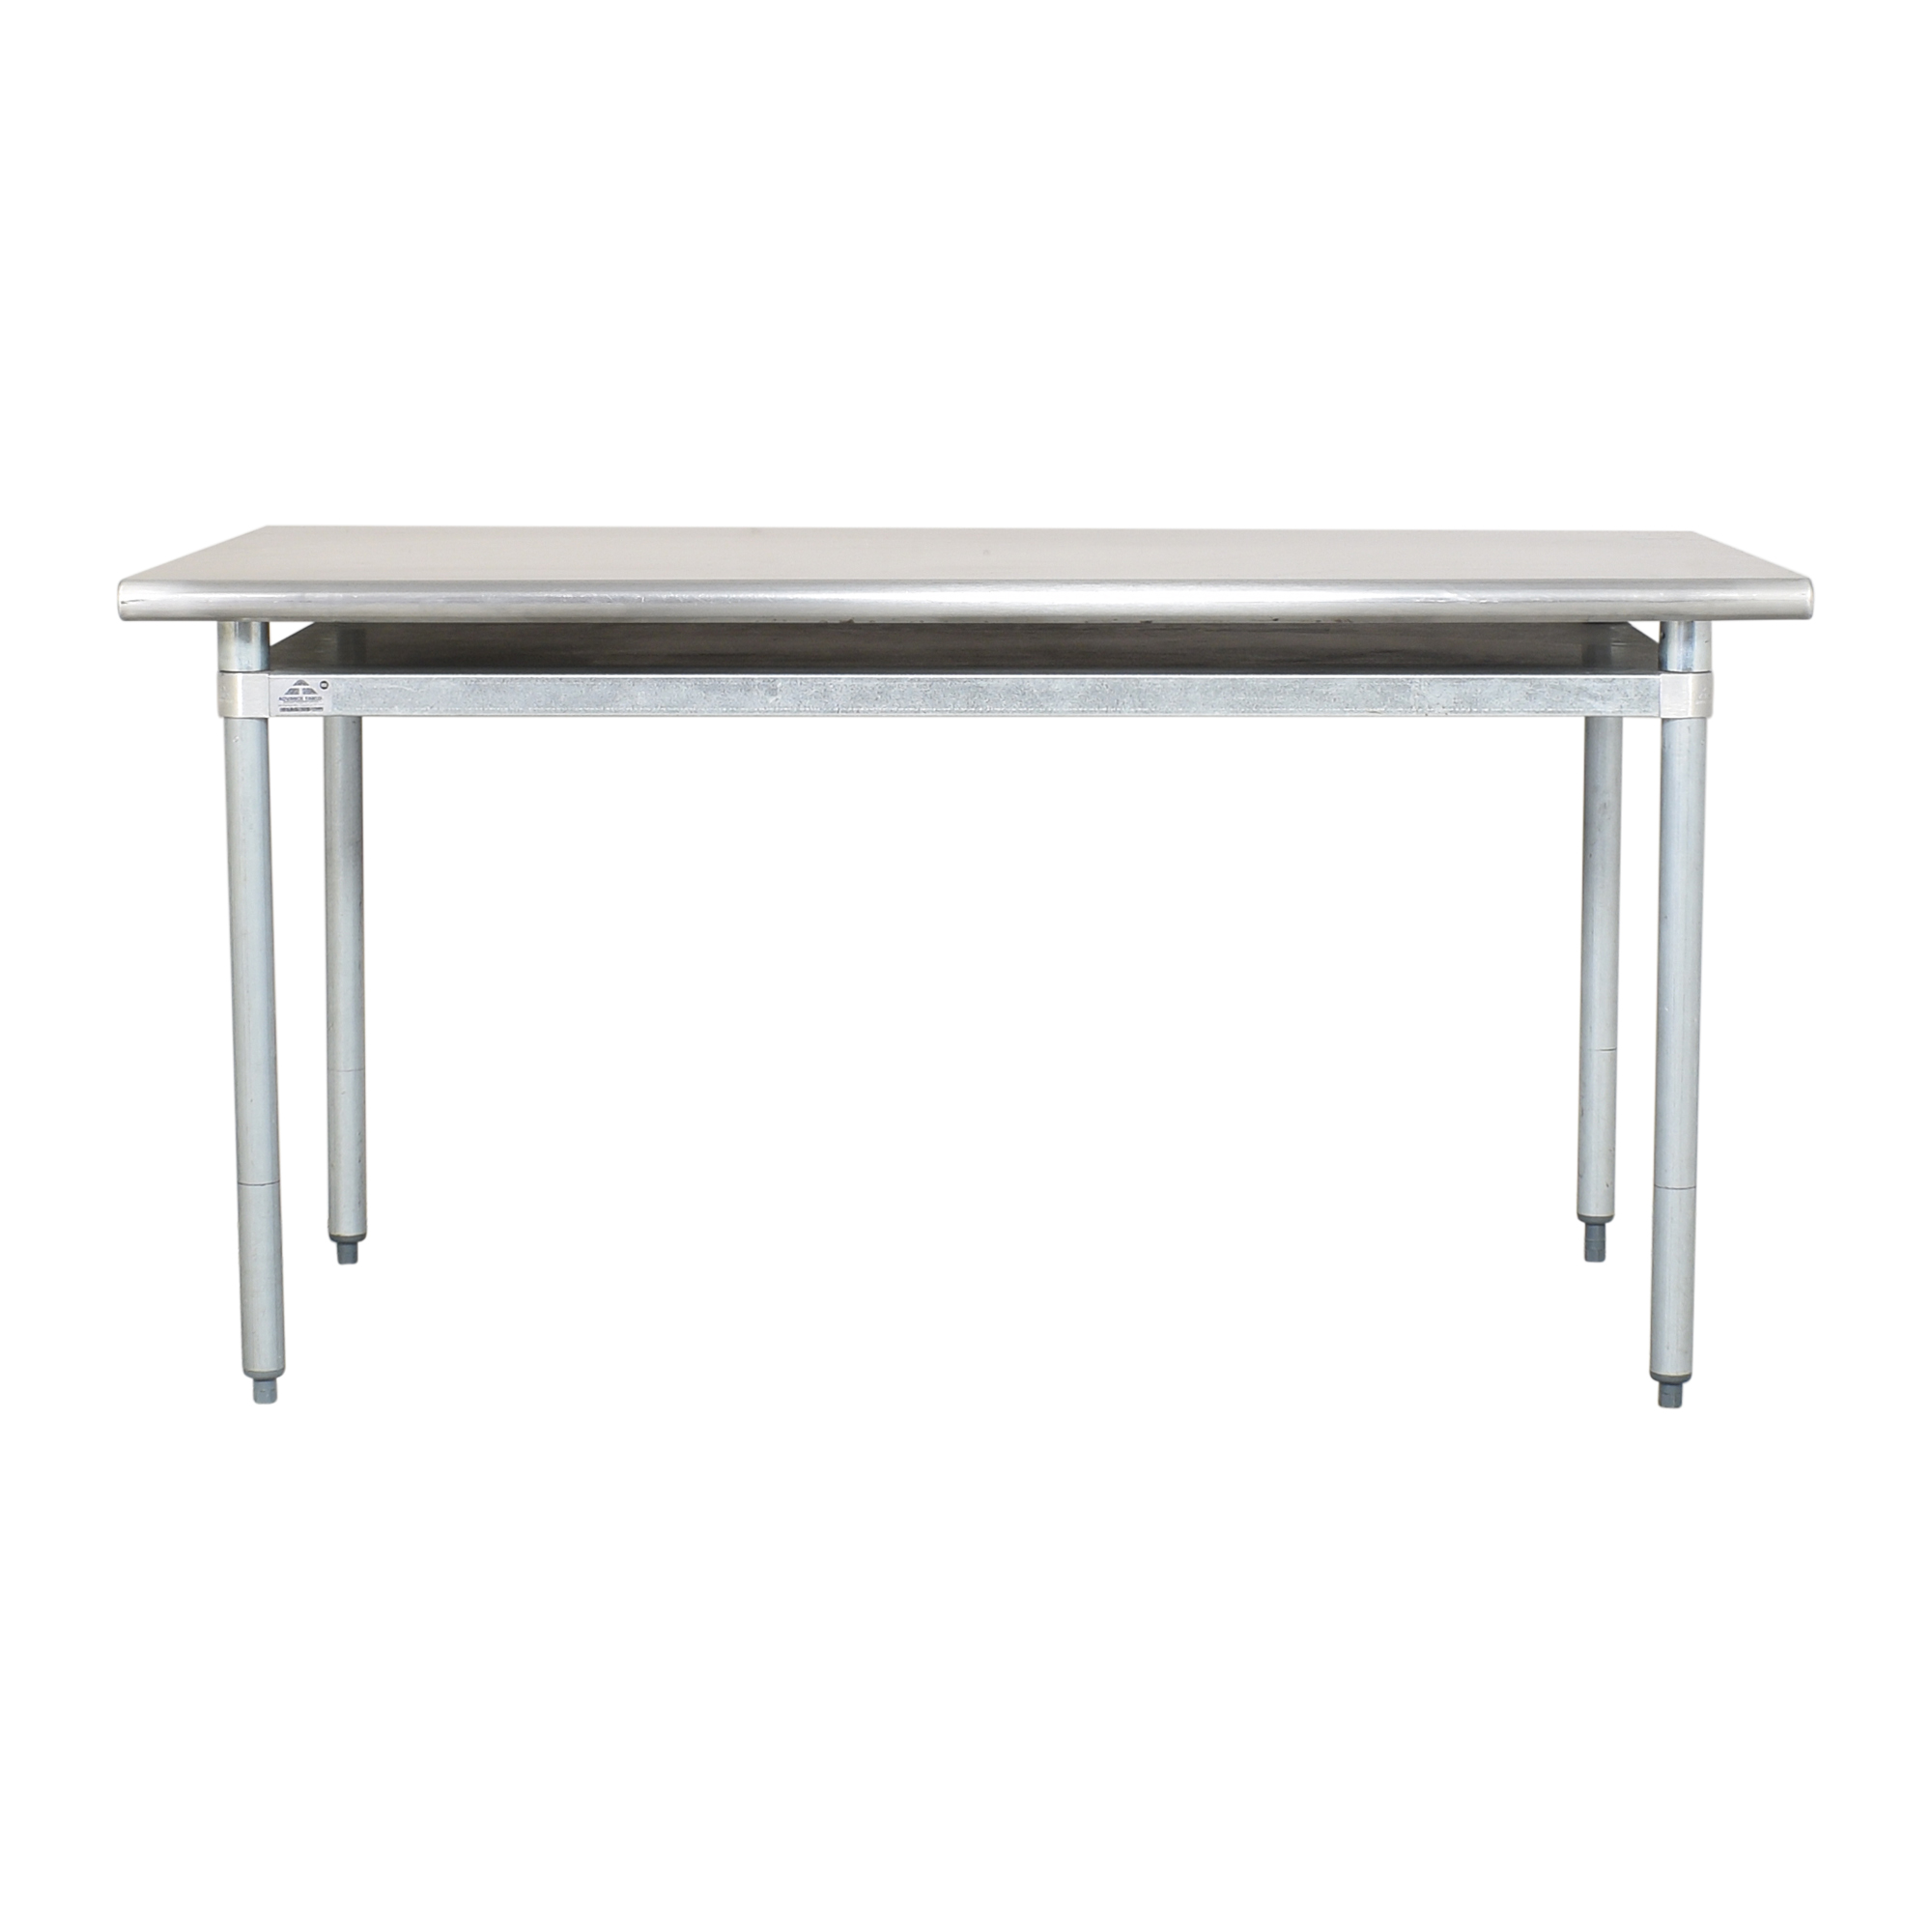 Advance Tabco Advance Tabco Kitchen Work Table with Undershelf discount